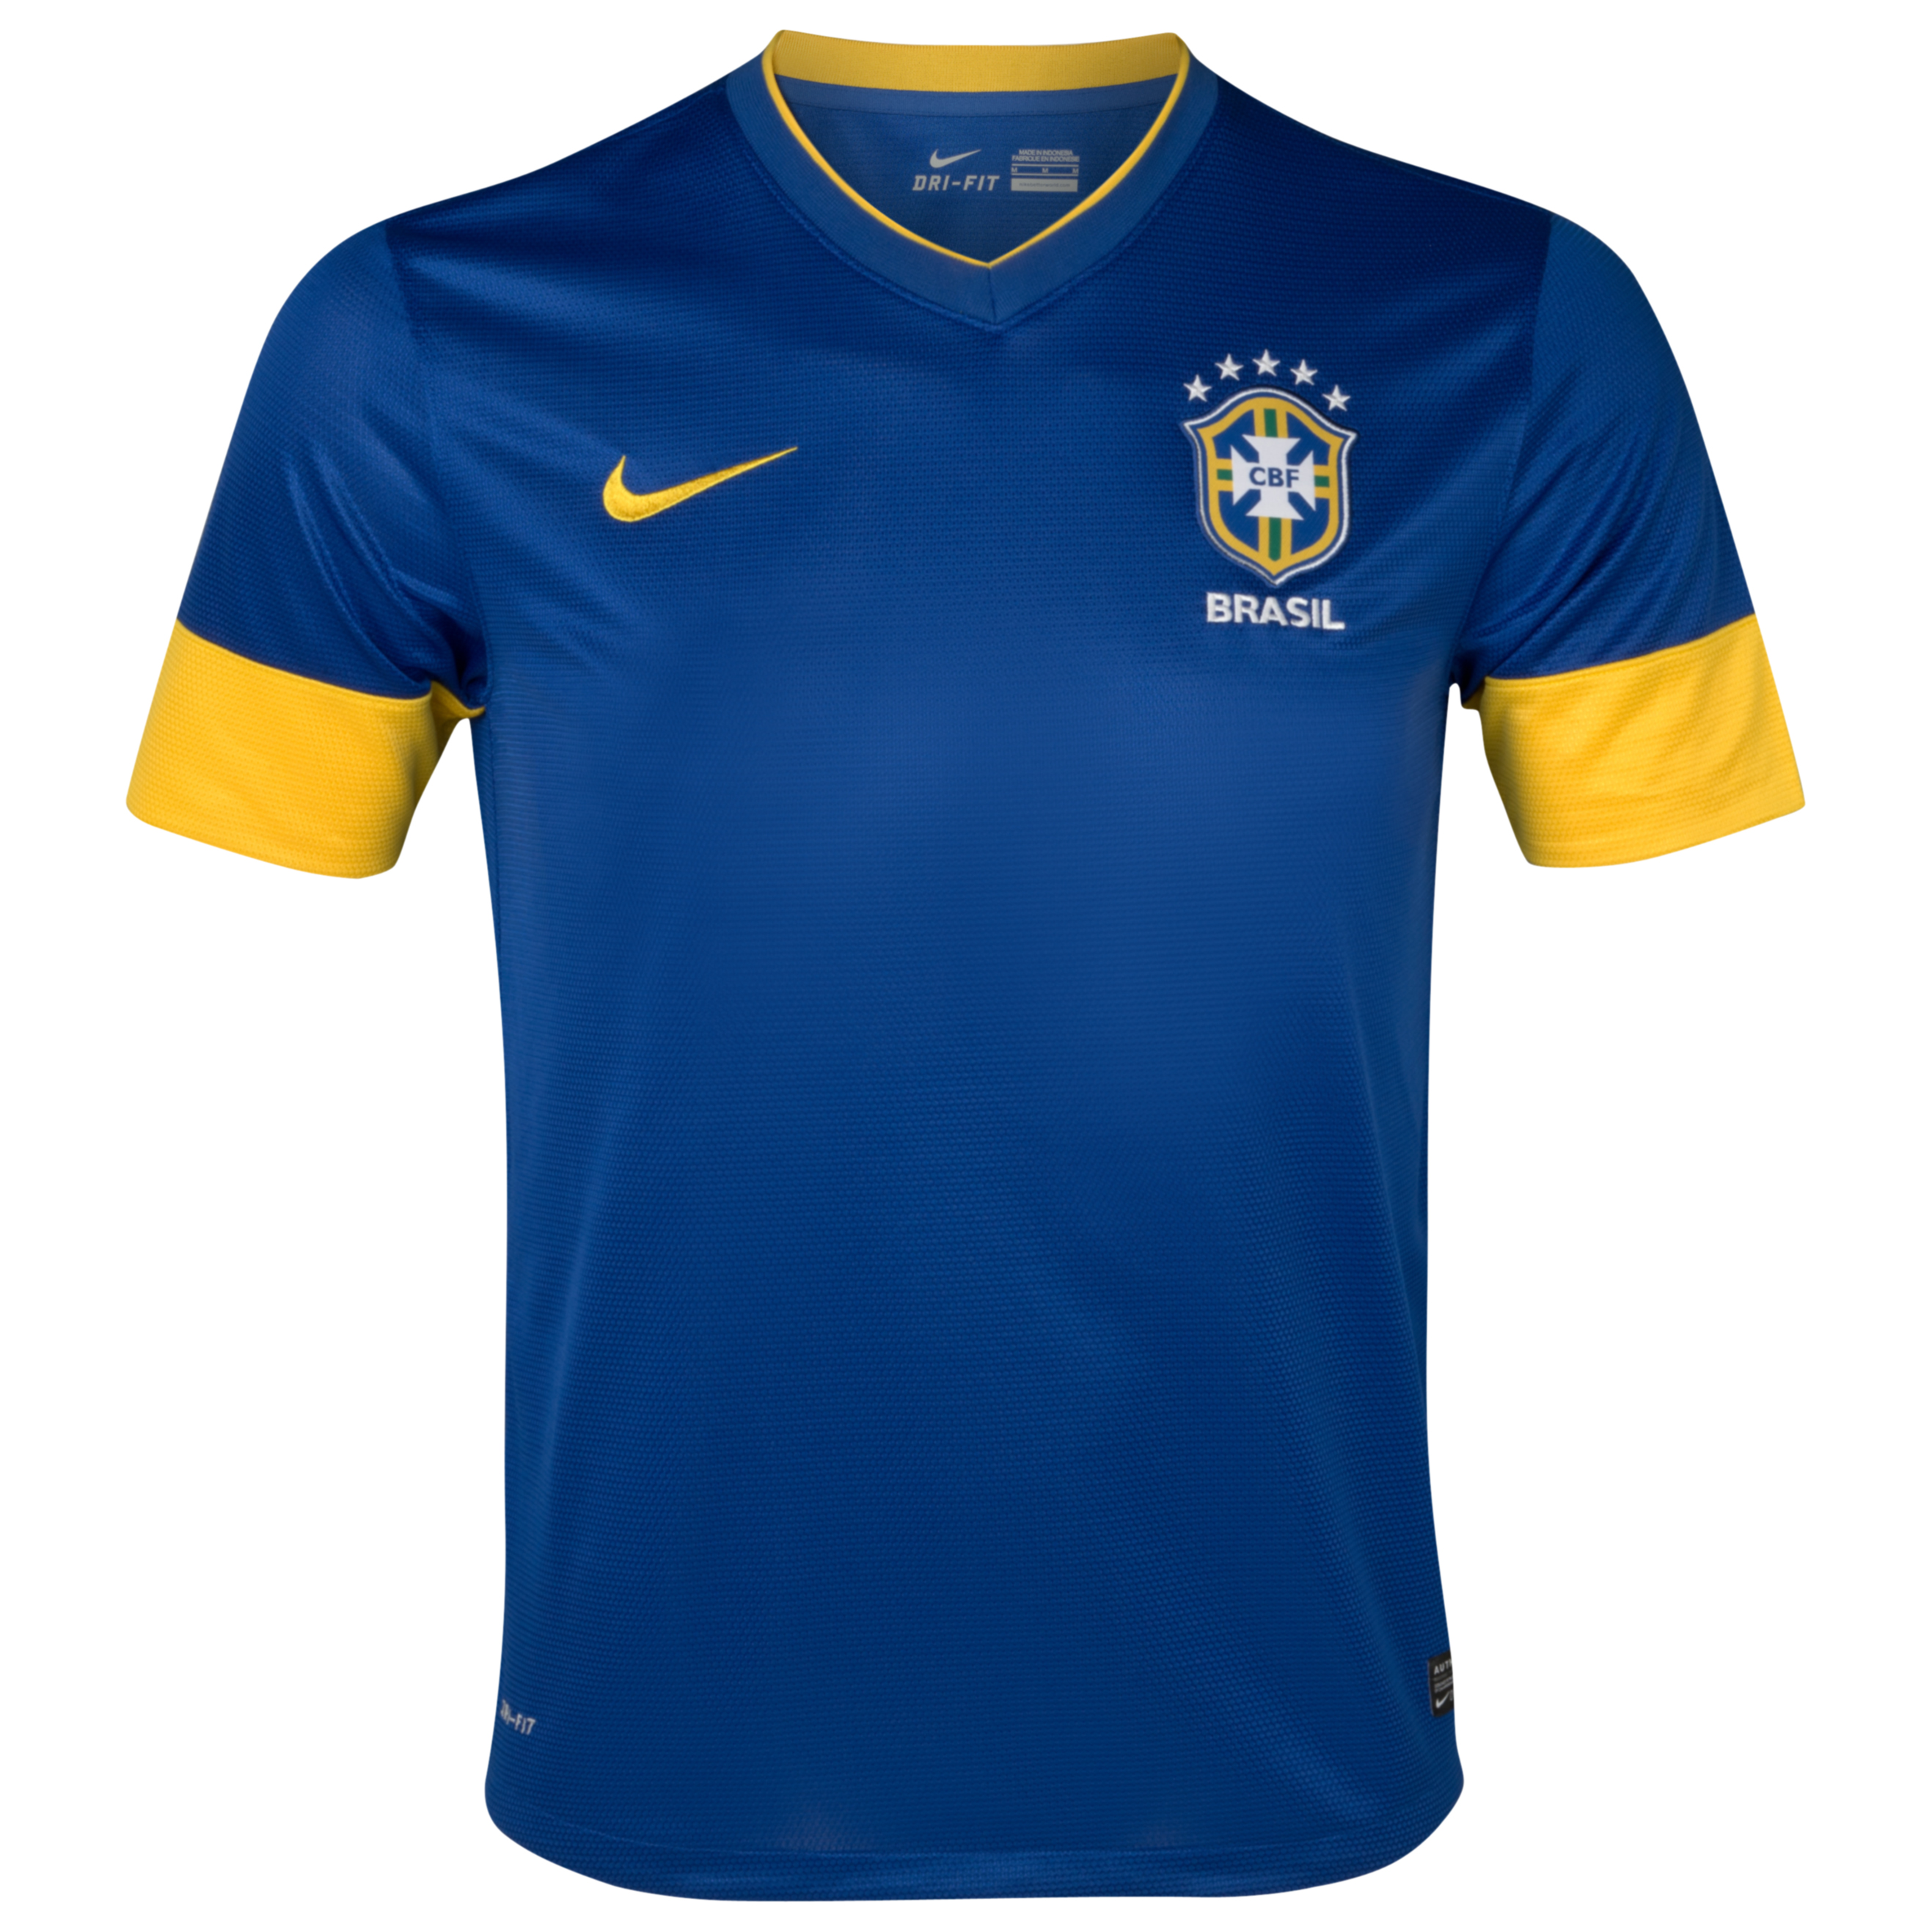 Brazil Away Shirt 2012/13